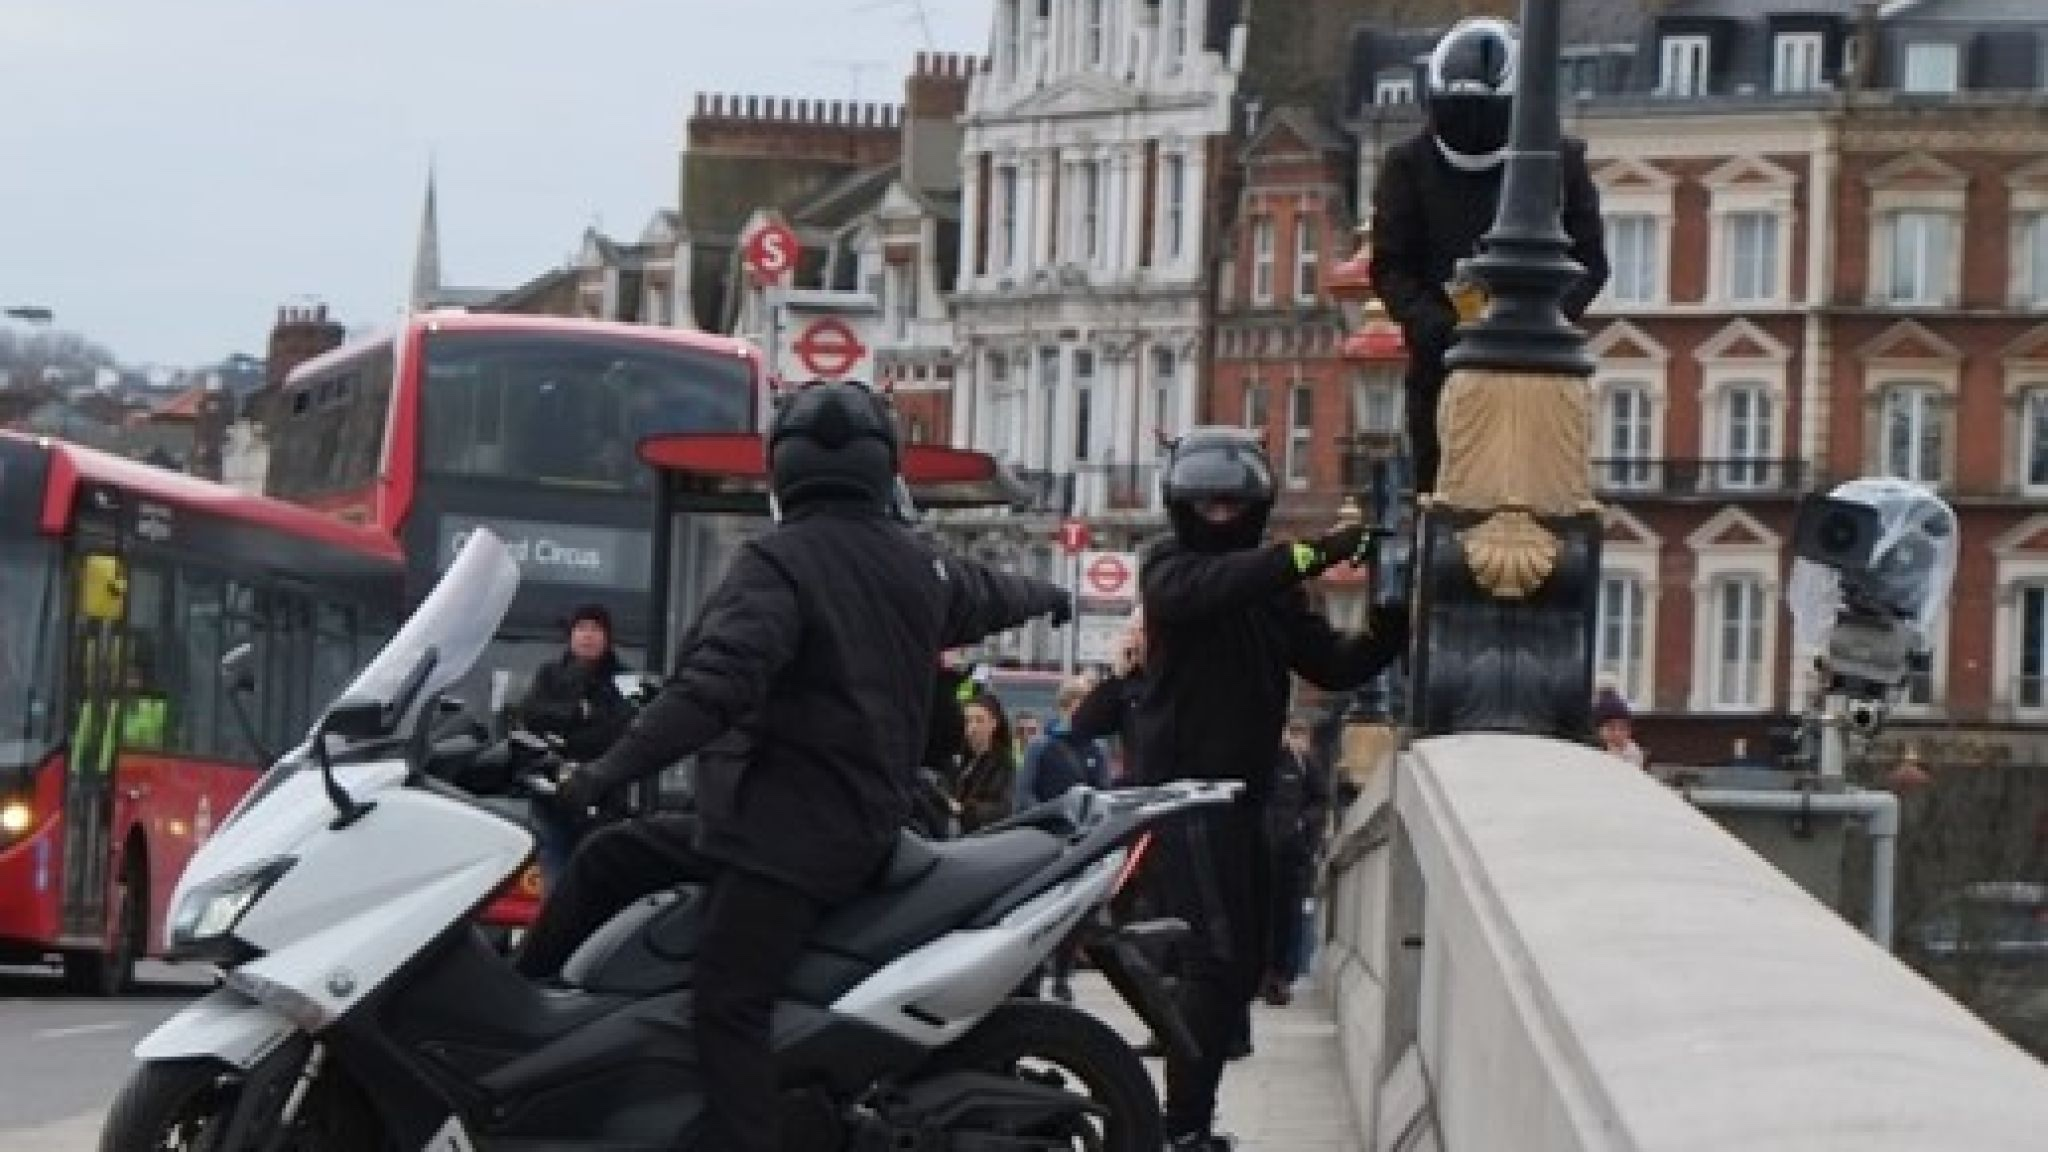 Moped stop traffic and attempt to steal cameras estimated to be worth £180,000